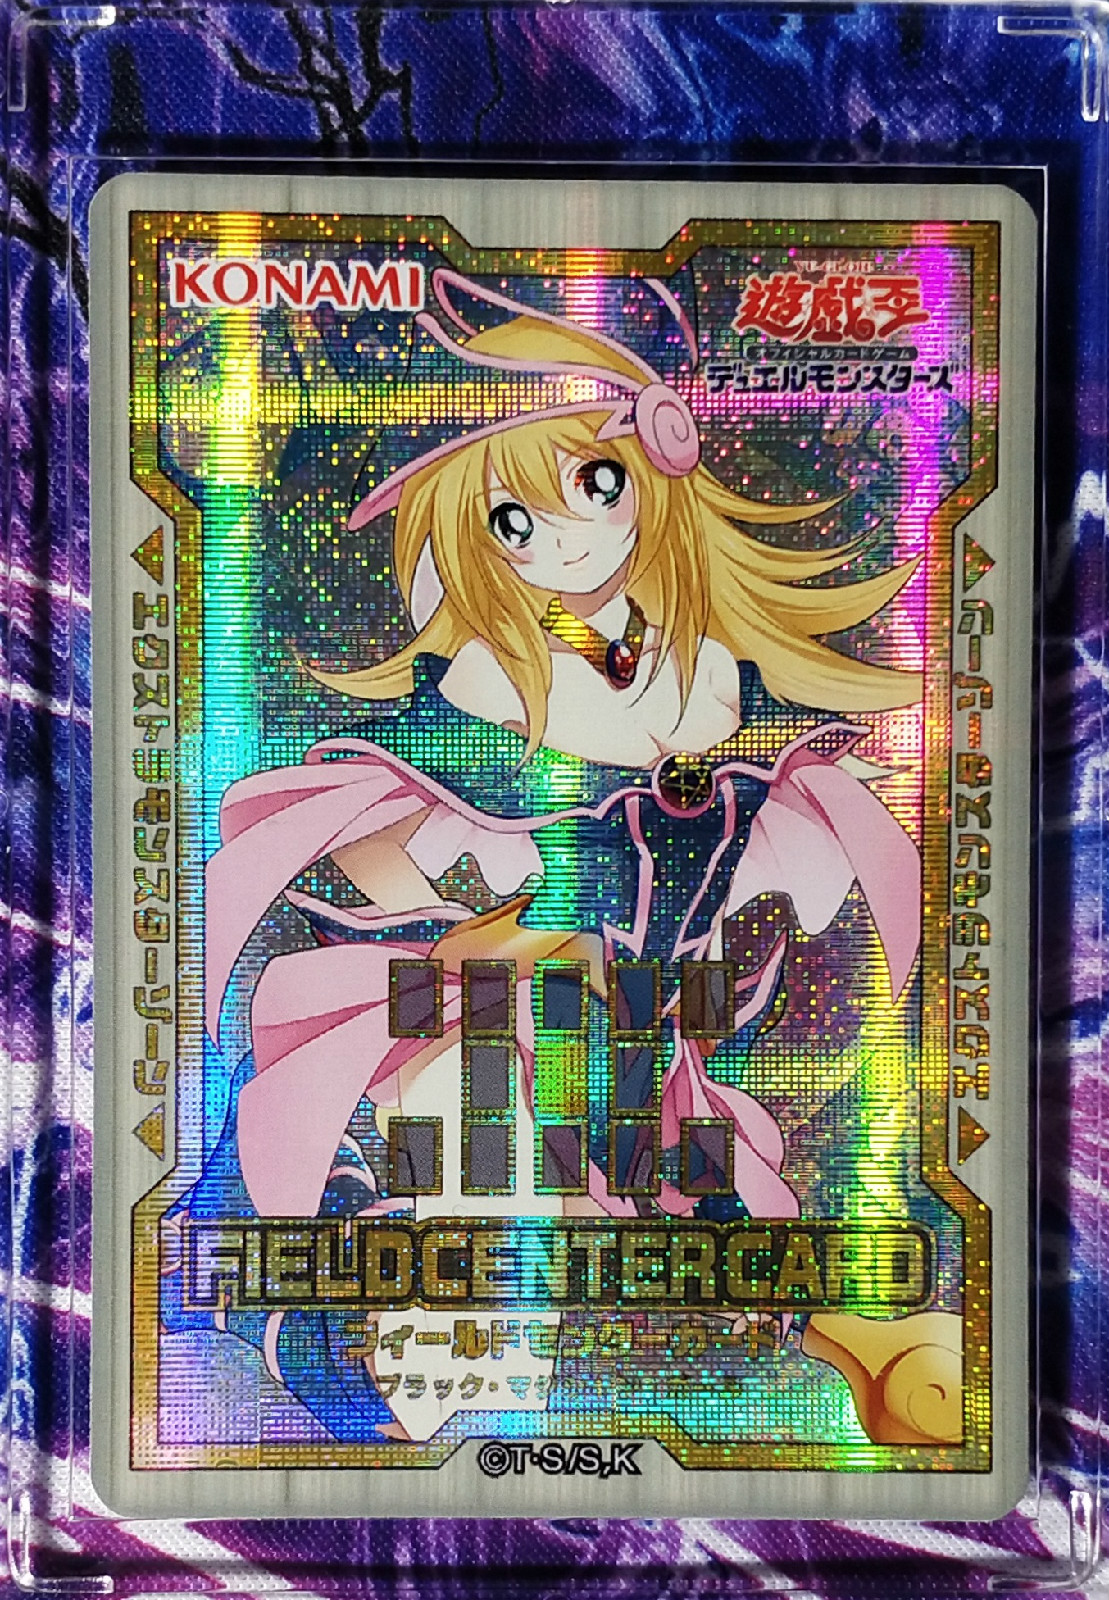 Yu Gi Oh DIY Dark Magician Girl Venue Center Colorful Toys Hobbies Hobby Collectibles Game Collection Anime Cards